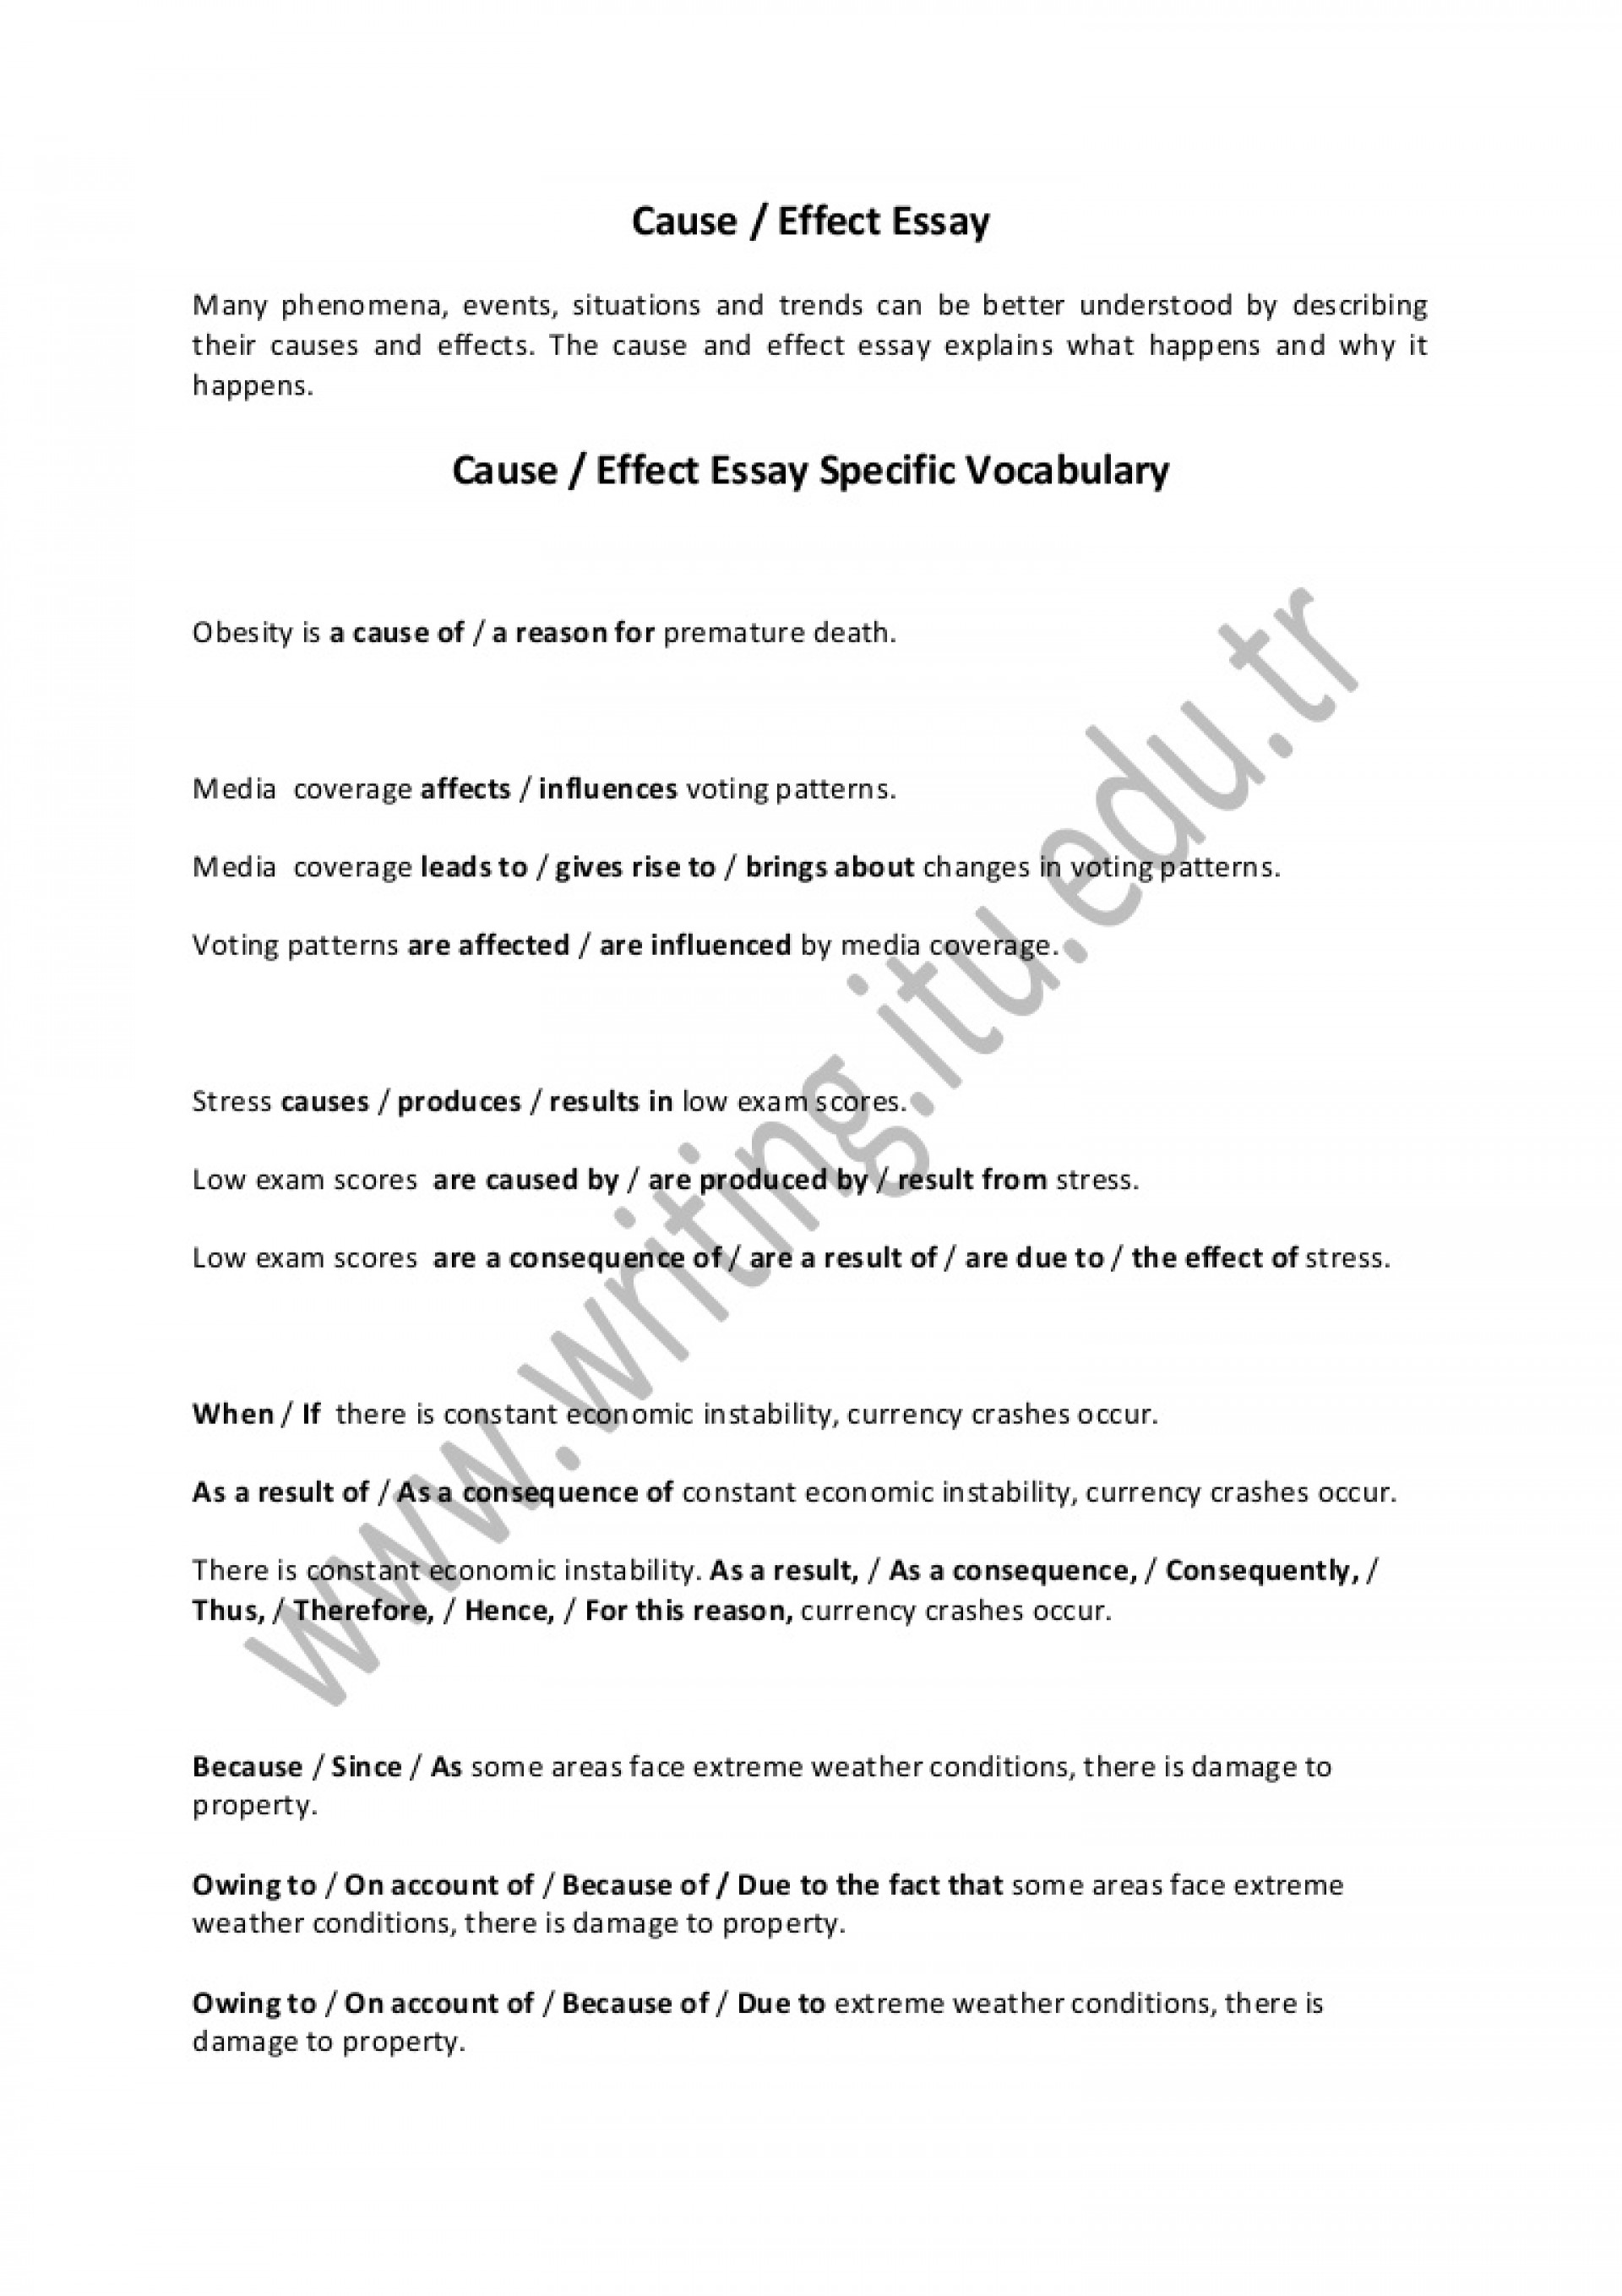 019 Essay Example Causeandeffectessay Thumbnail Cause And Effect Amazing Examples On Stress 4th Grade 1920